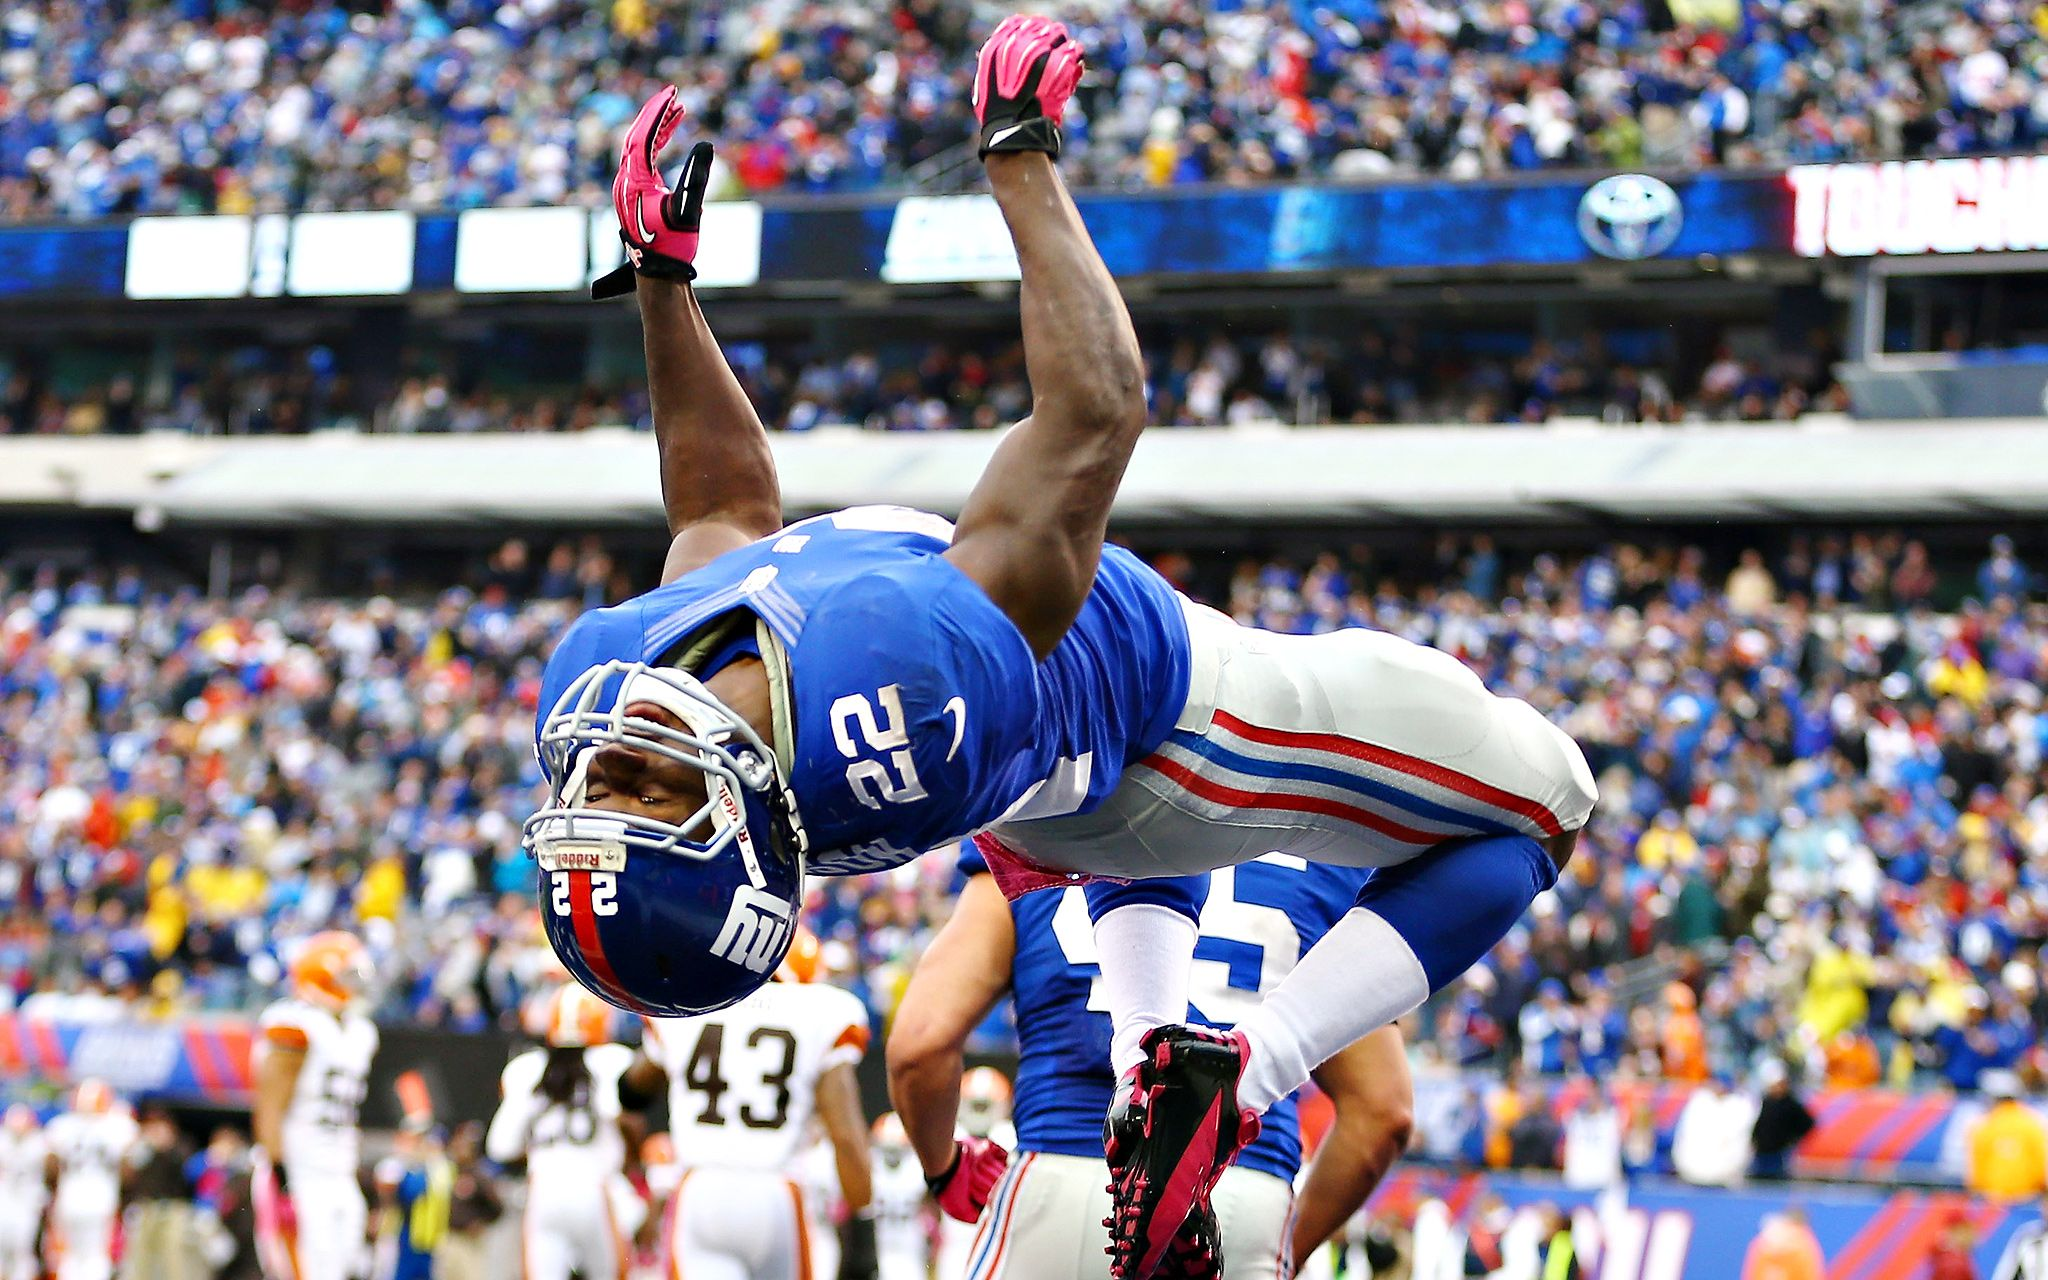 David Wilson does a backflip to celebrate is first NFL